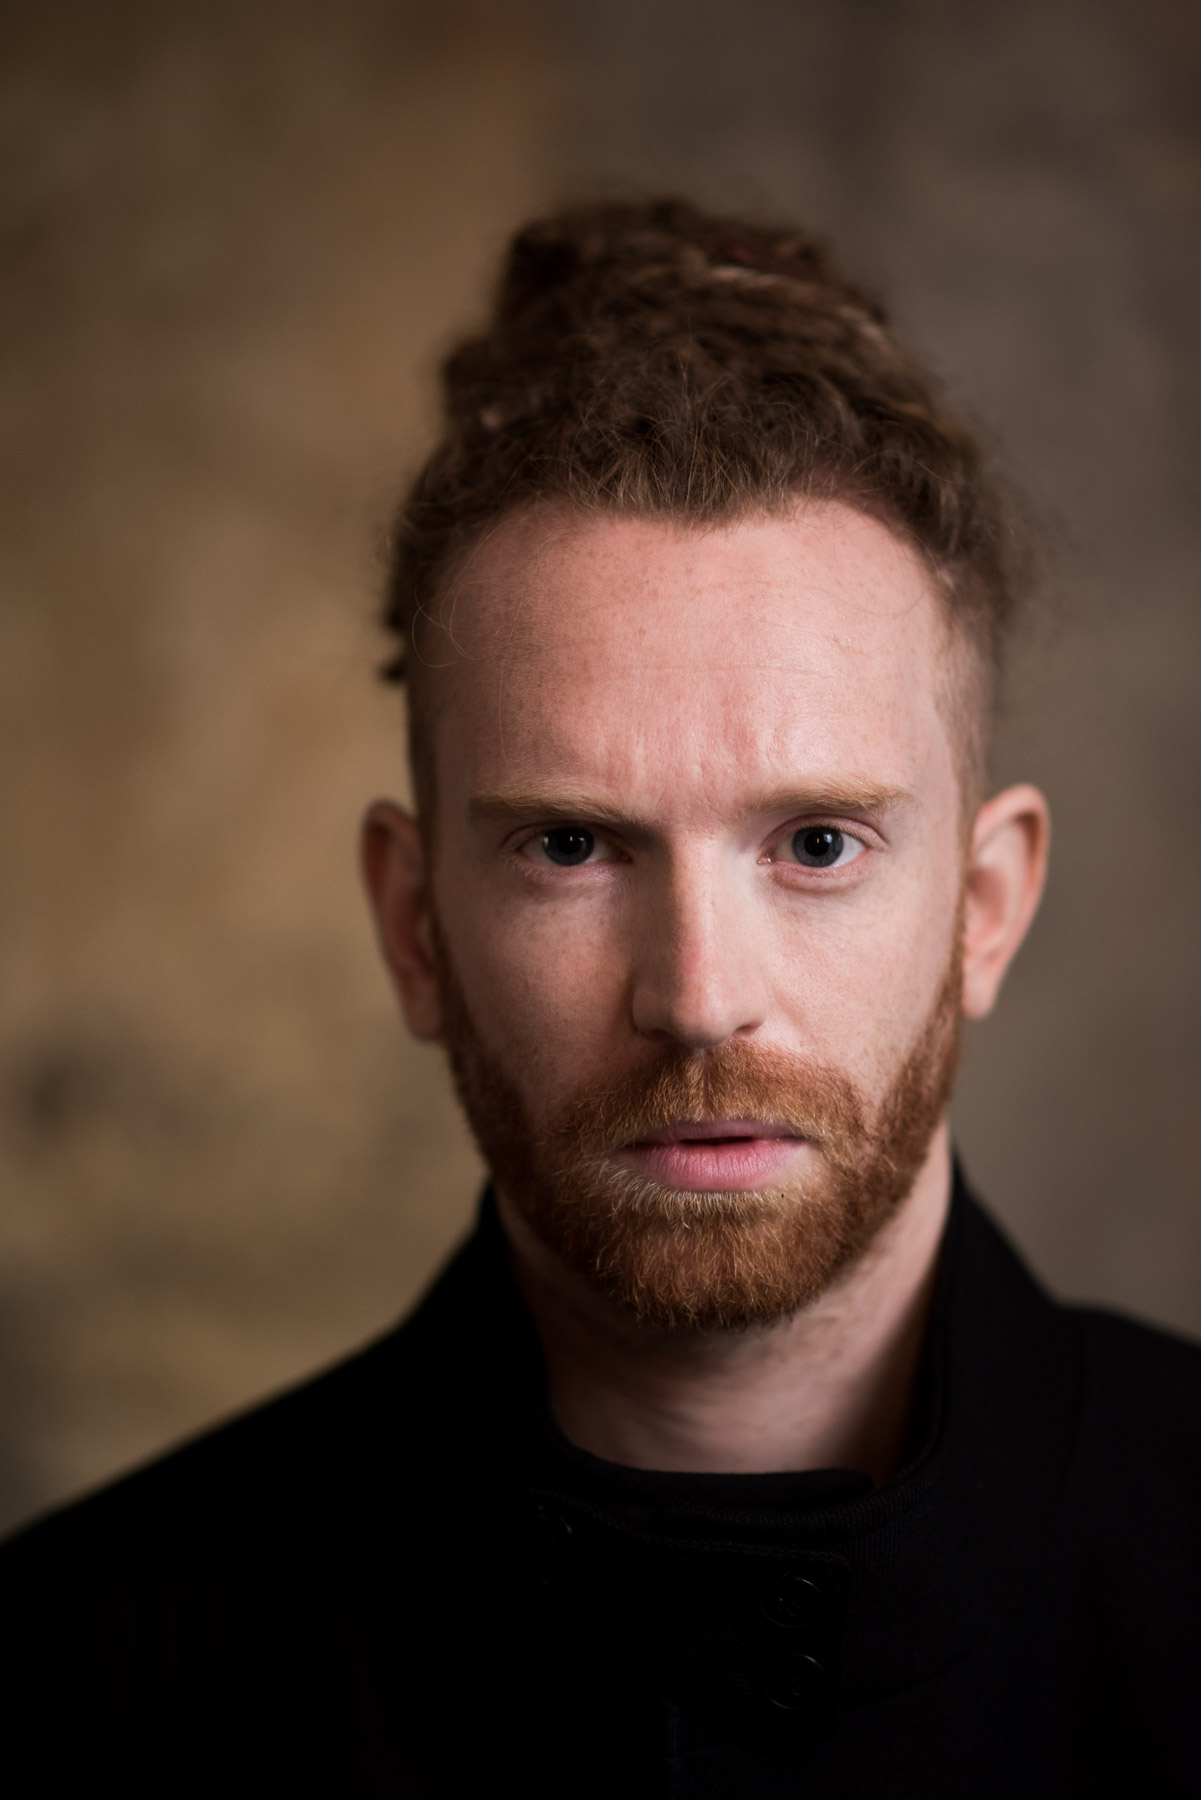 Newton Faulkner will perform The Sung Thoughts of The Journalist